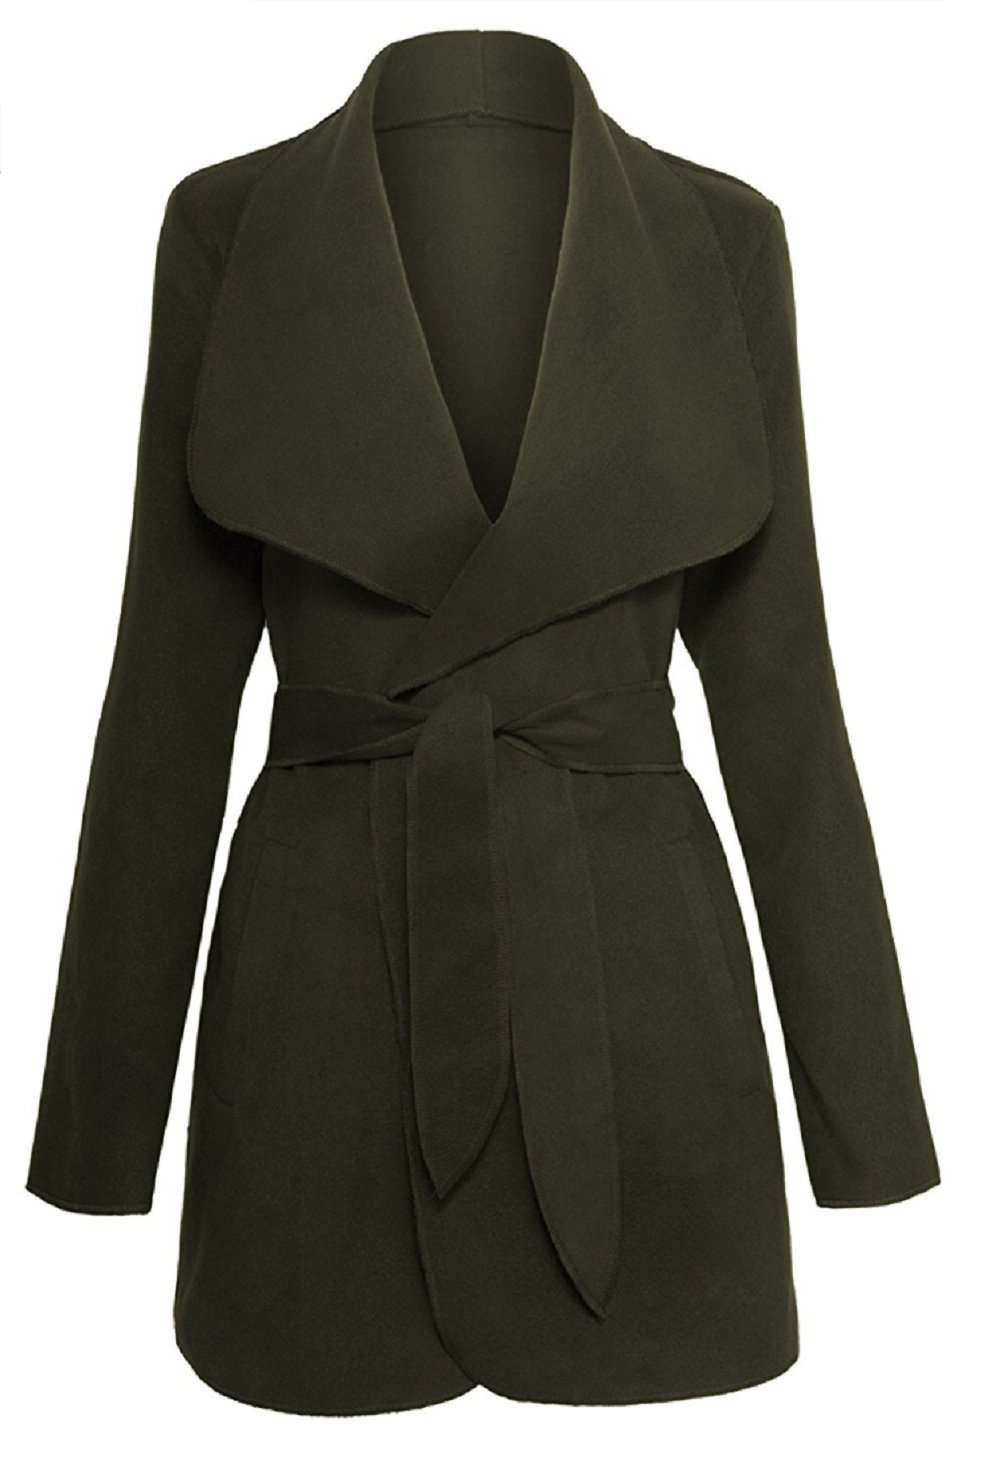 Calilogo Women's Shawl Collar Waterfall Belted Wrap Coat Jacket (Small, Olive)